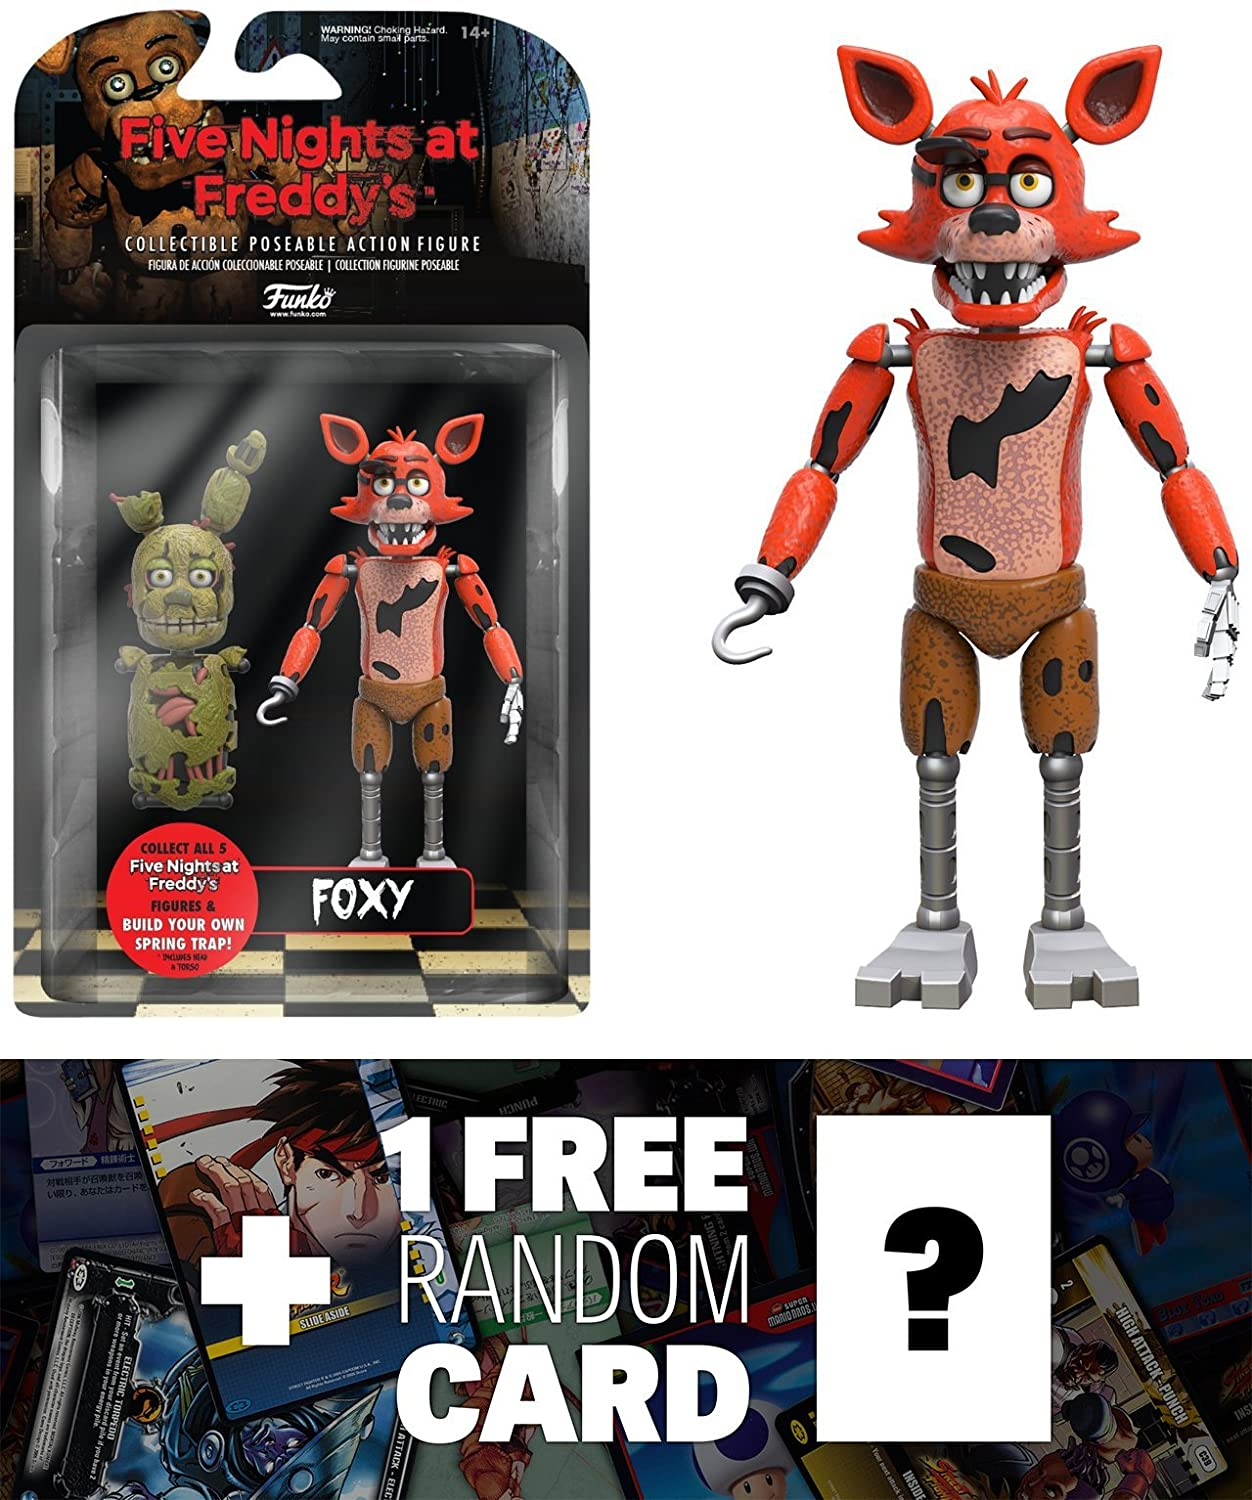 Foxy: Funko x Five Nights at Freddy's Action Figure + 1 FREE Video Games  Themed Trading Card Bundle (088484)